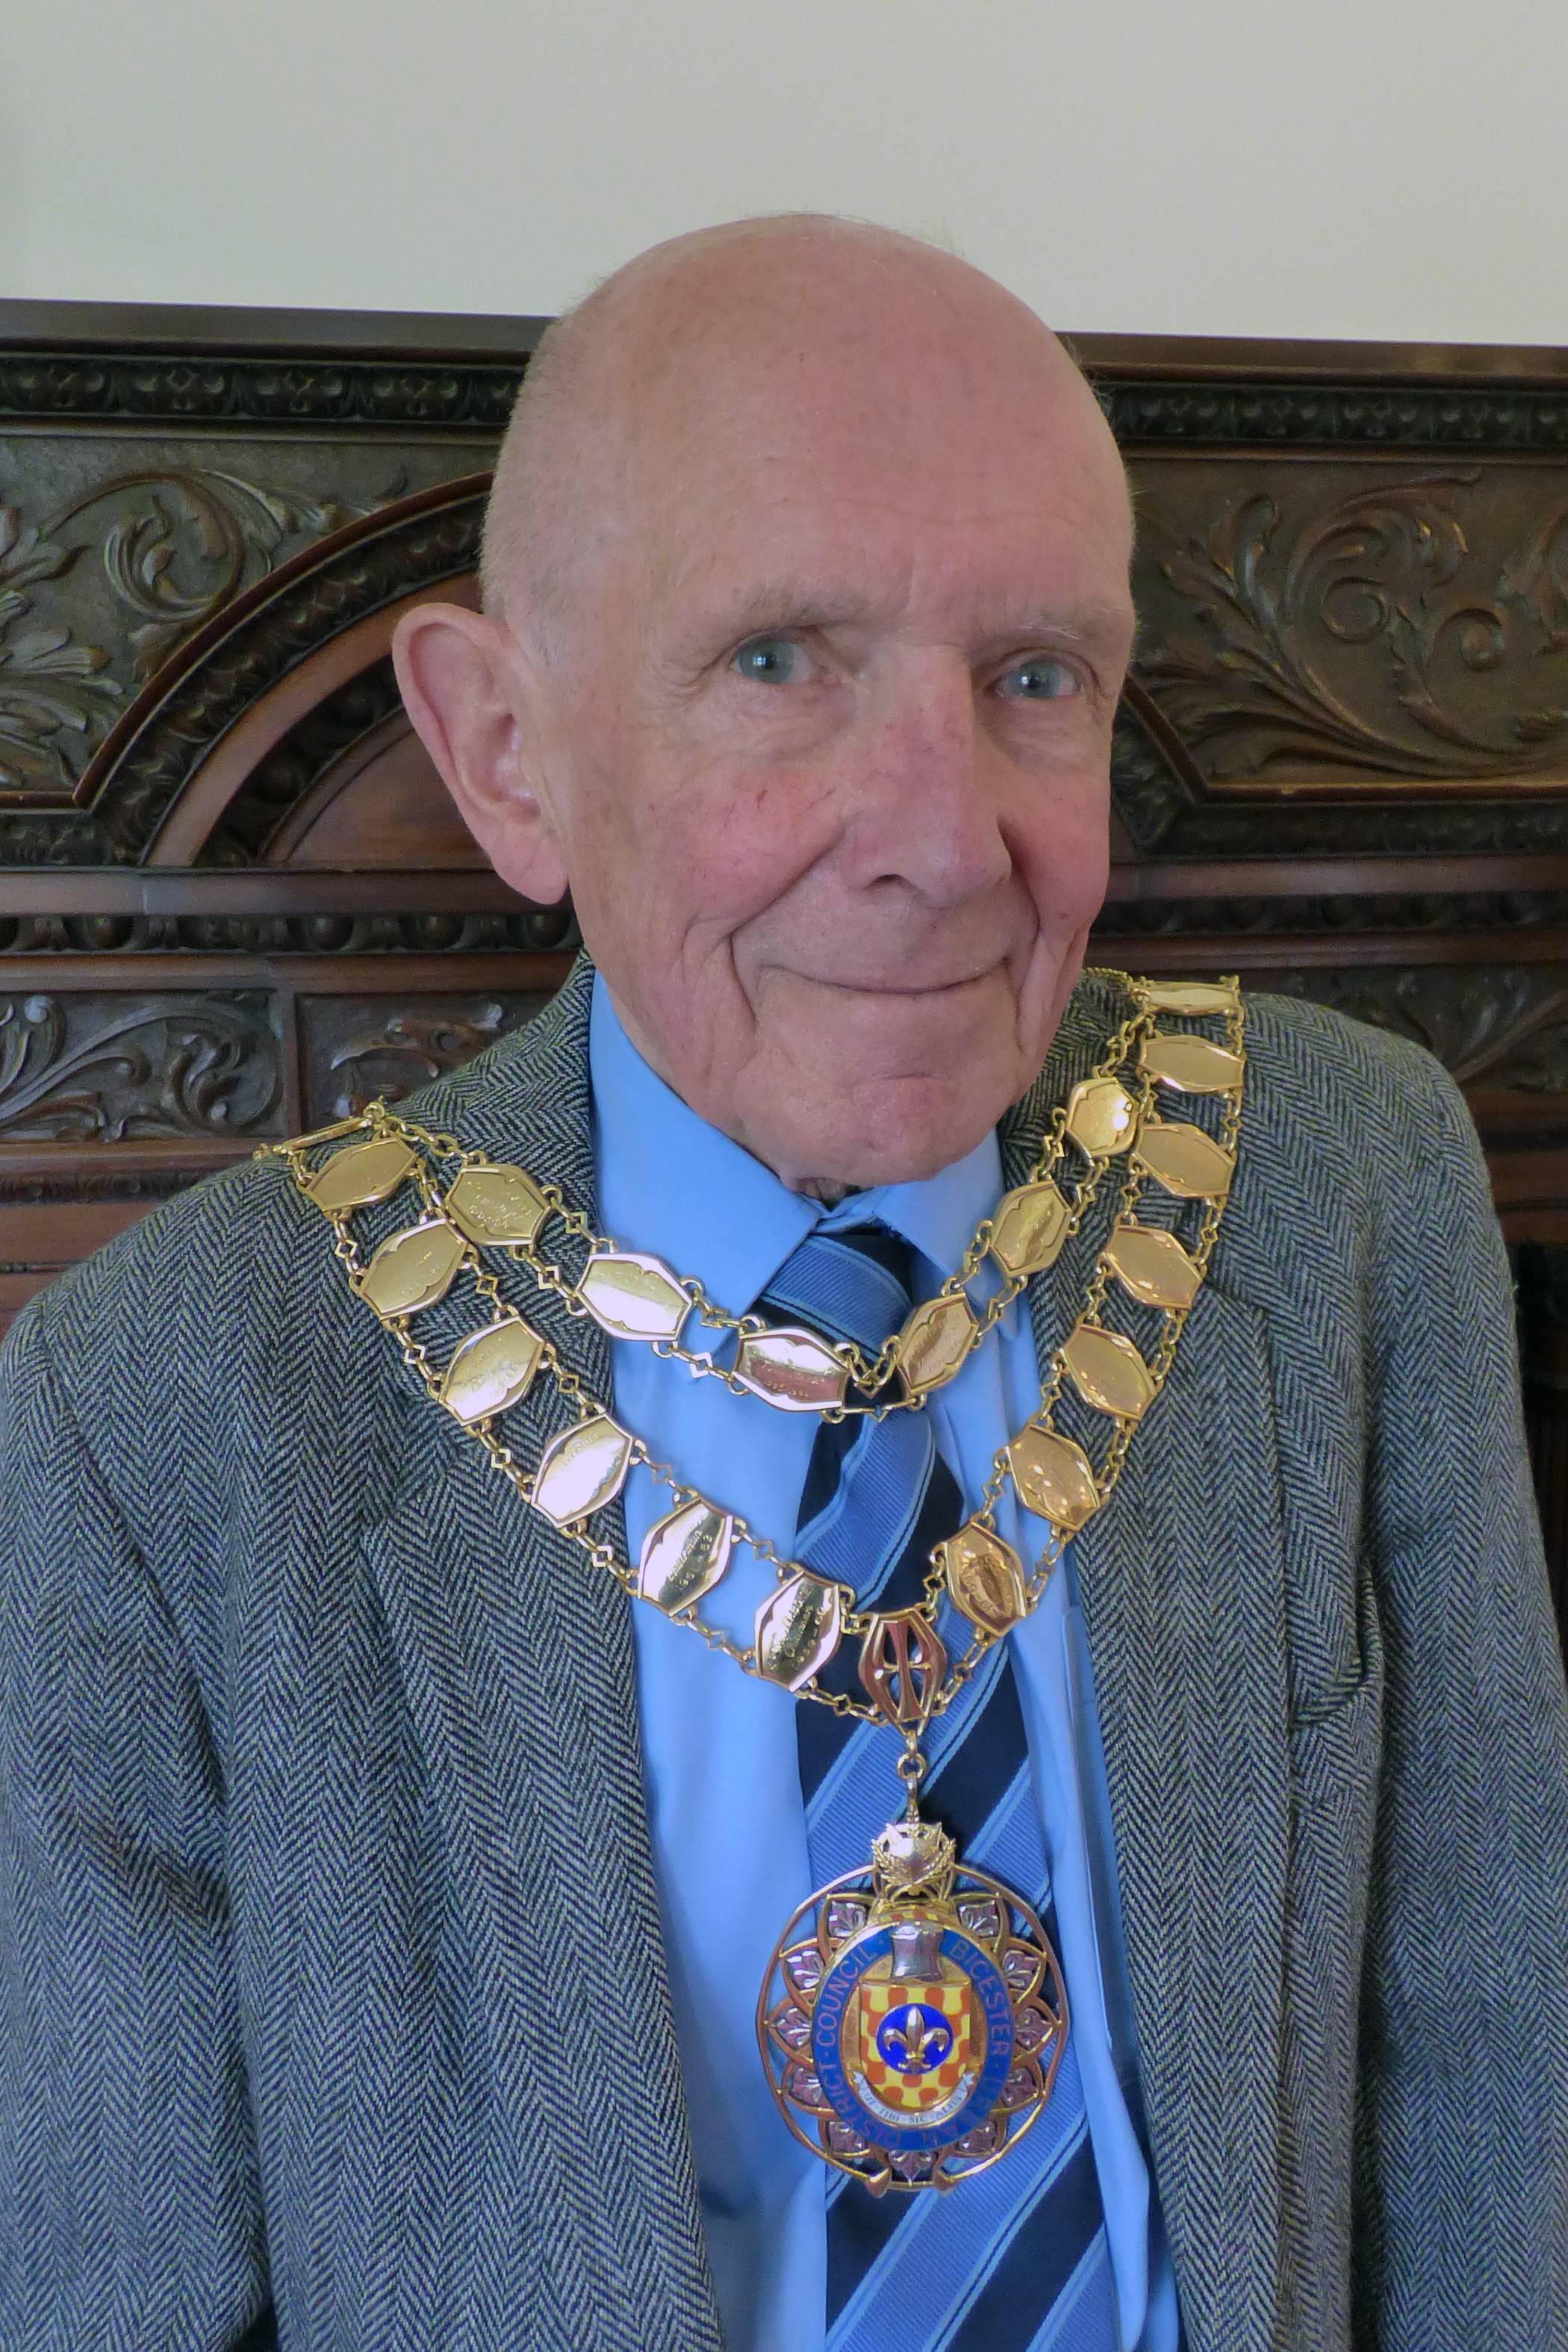 Former Bicester town mayor Jim French who passed away last month